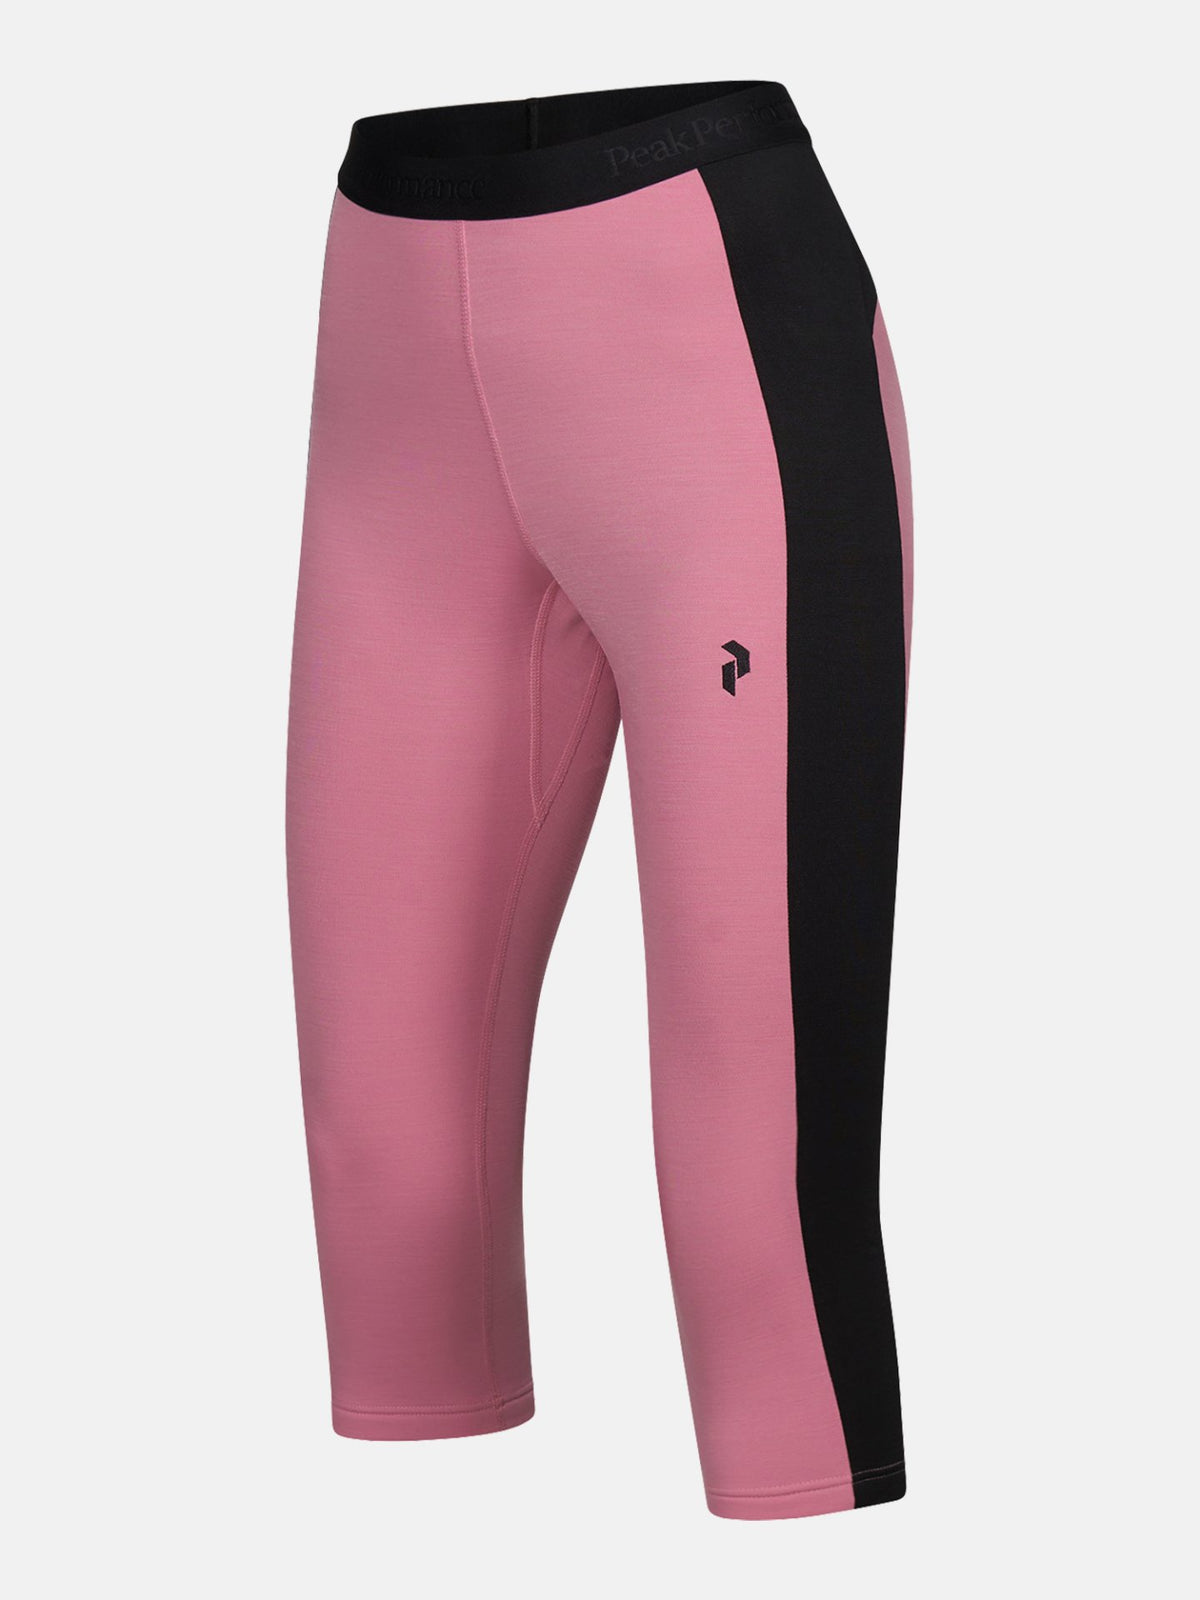 Vertical Mid Tights Women